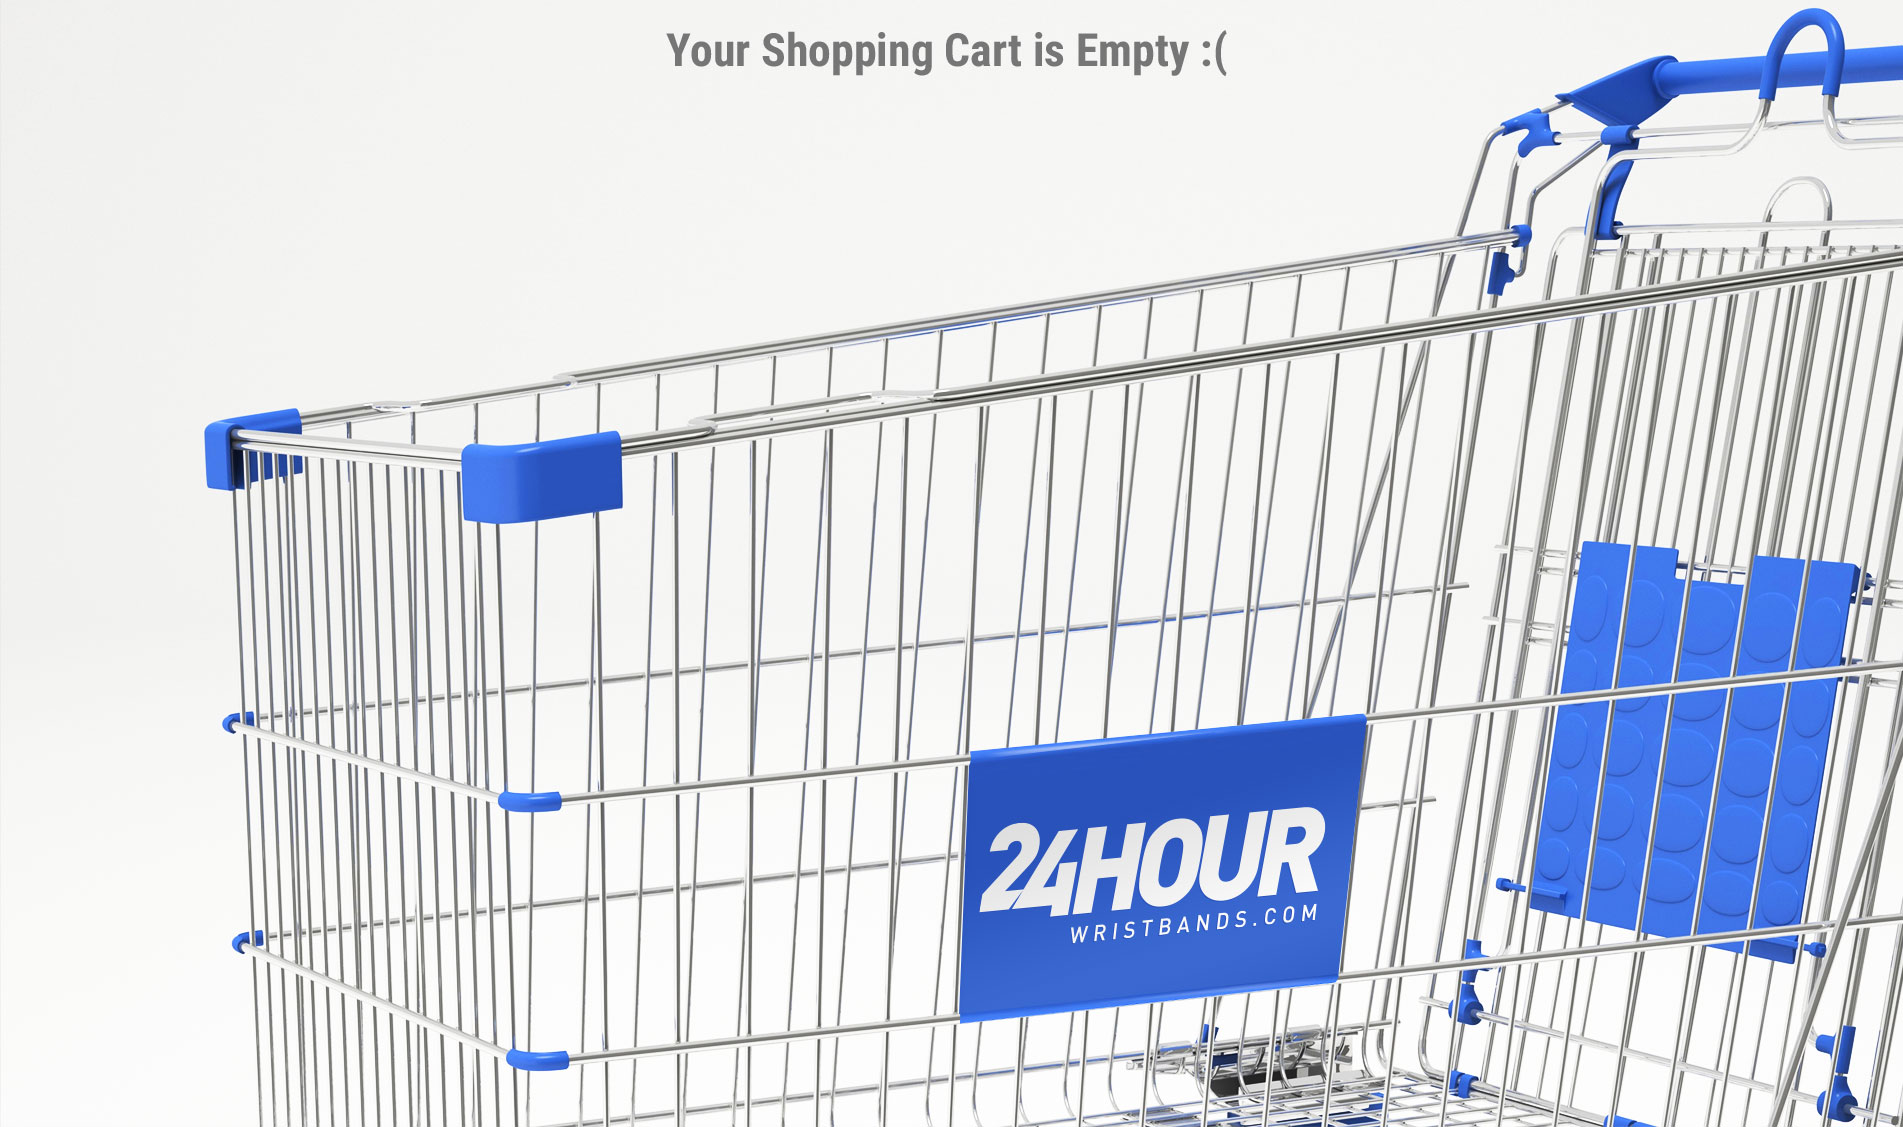 Your Shopping Cart Is Empty